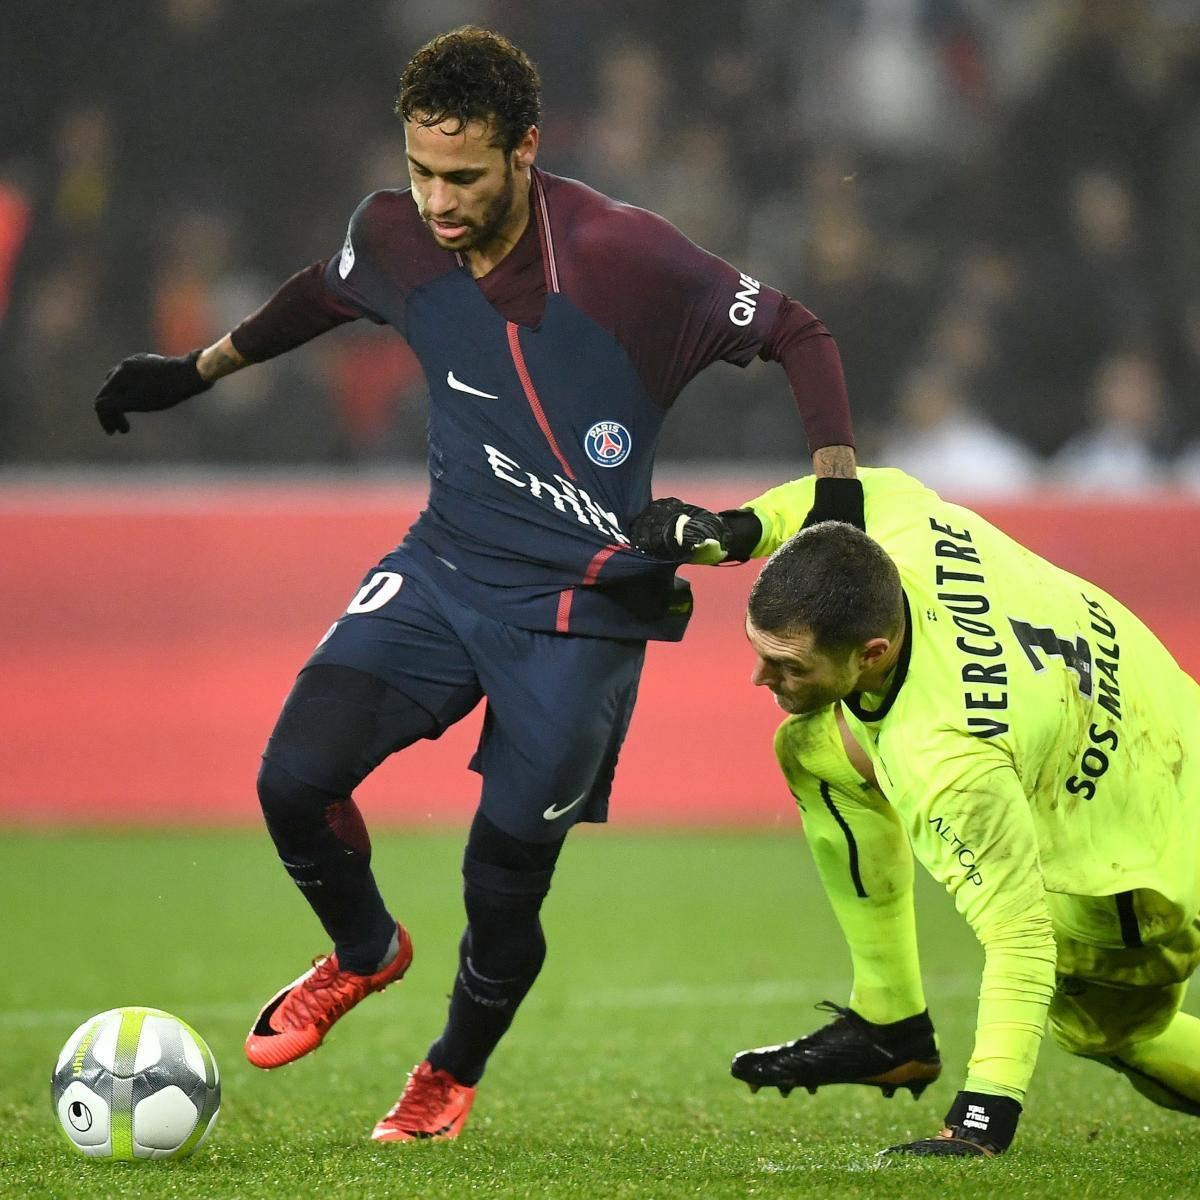 Brazilian Star Moves From Psg: Neymar Picks Up Assist As PSG Beat Caen 3-1 In Ligue 1